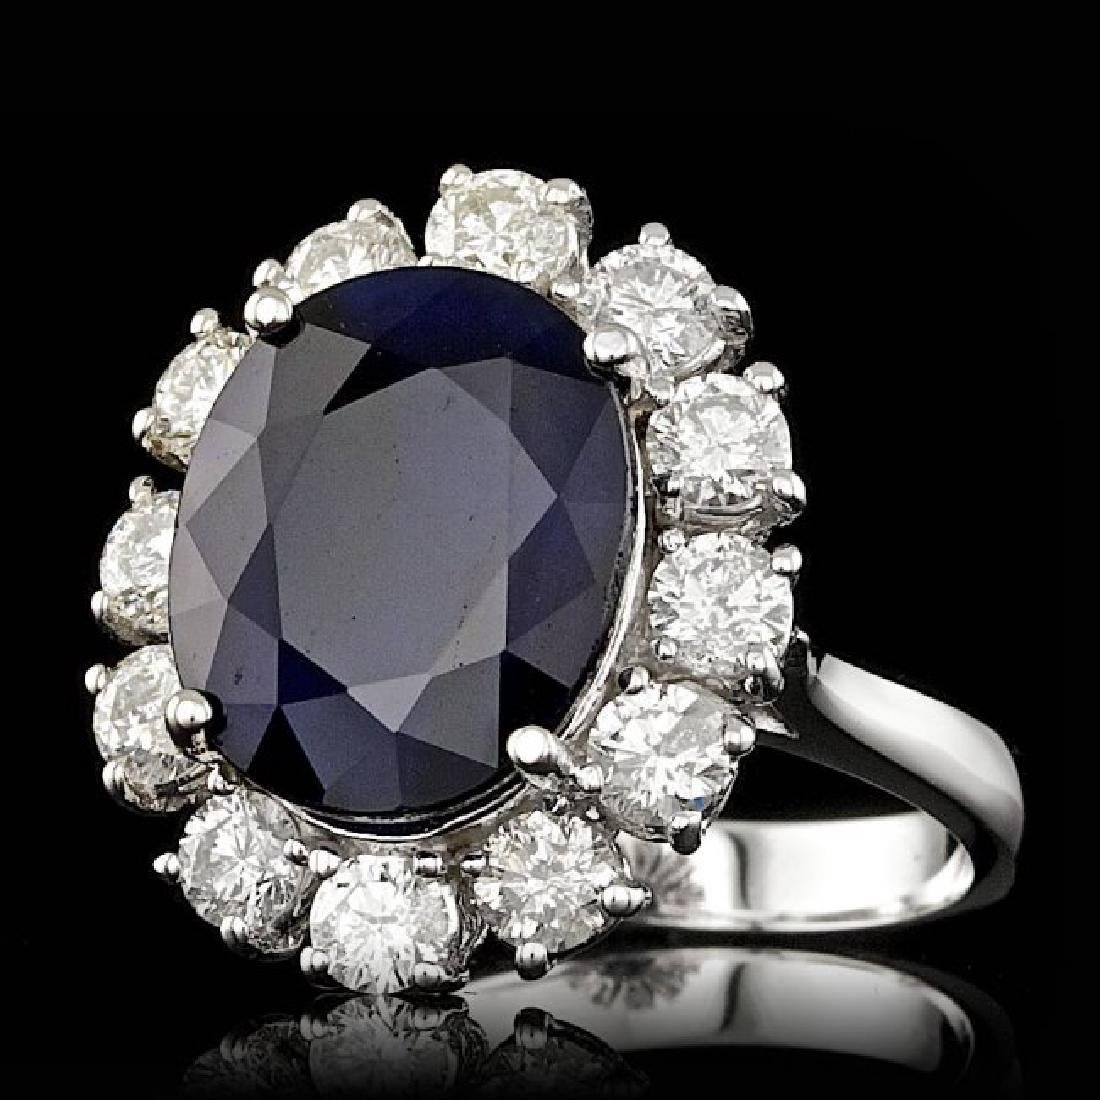 14k Gold 8.00ct Sapphire 1.70ct Diamond Ring - 2